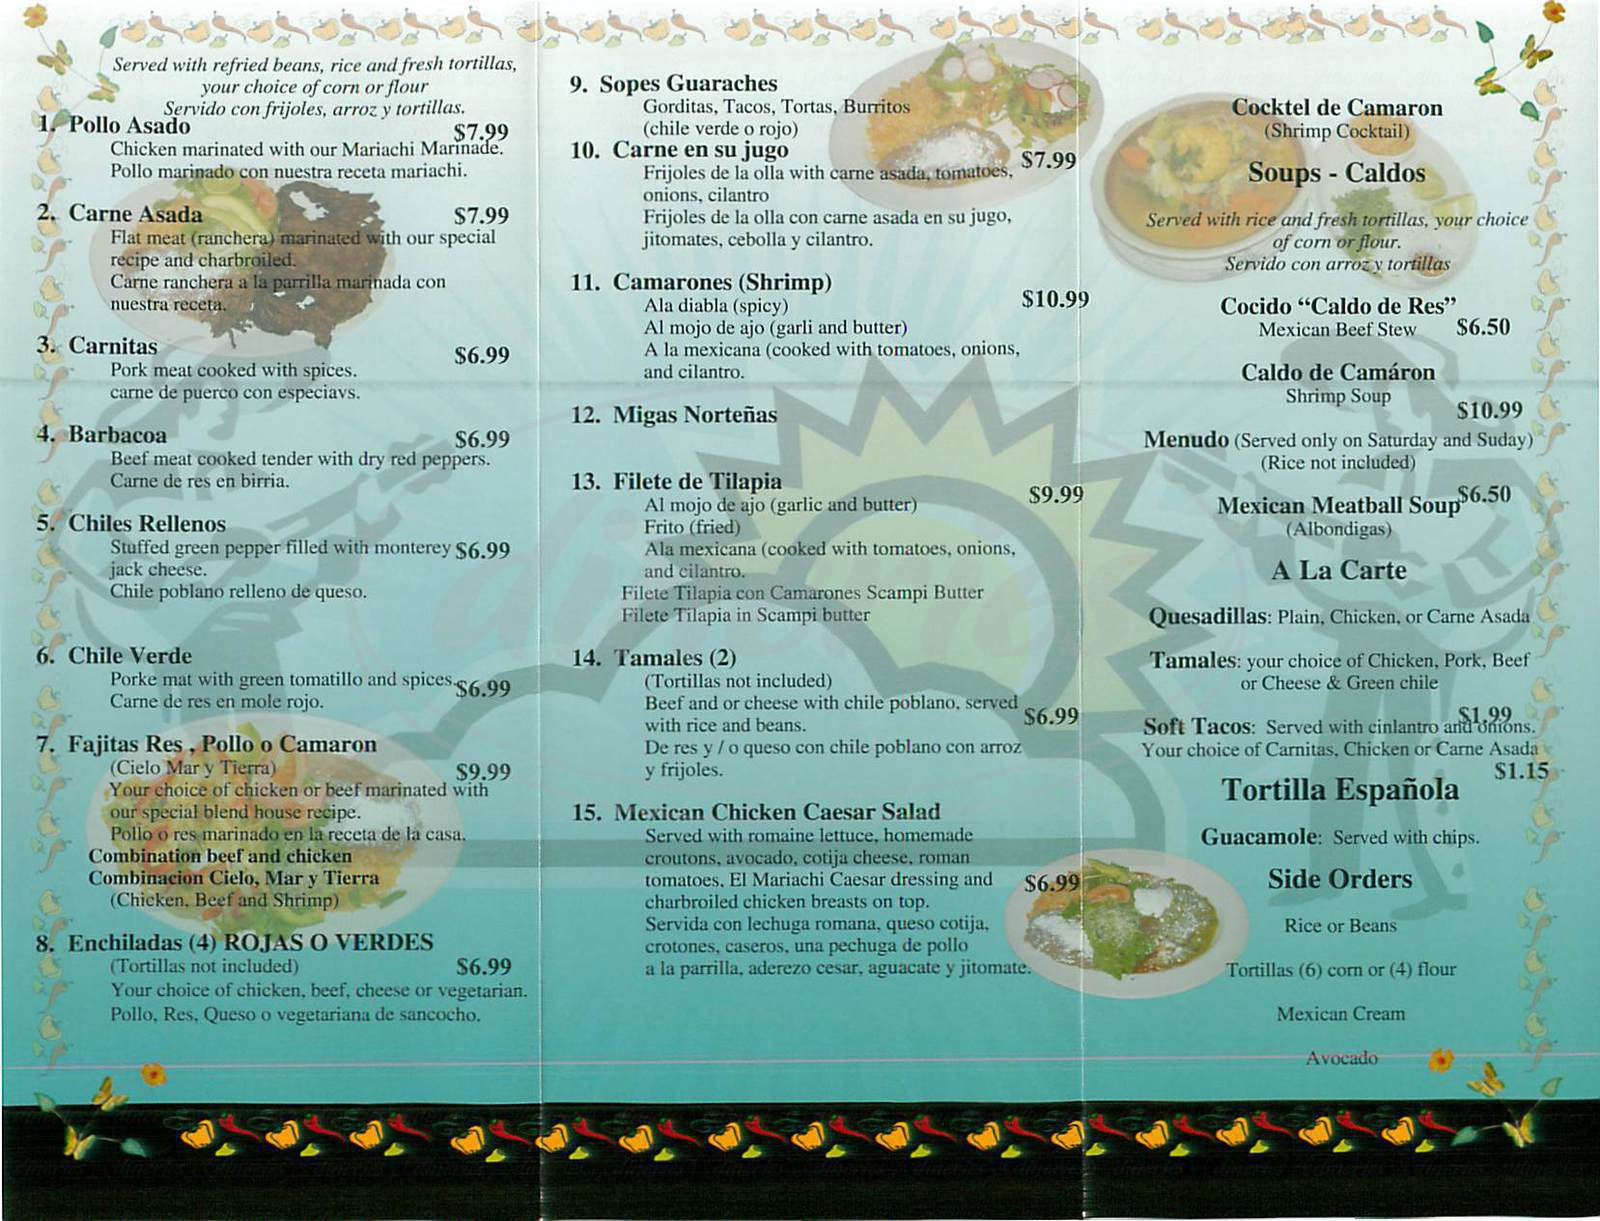 menu for El Mariachi Loco